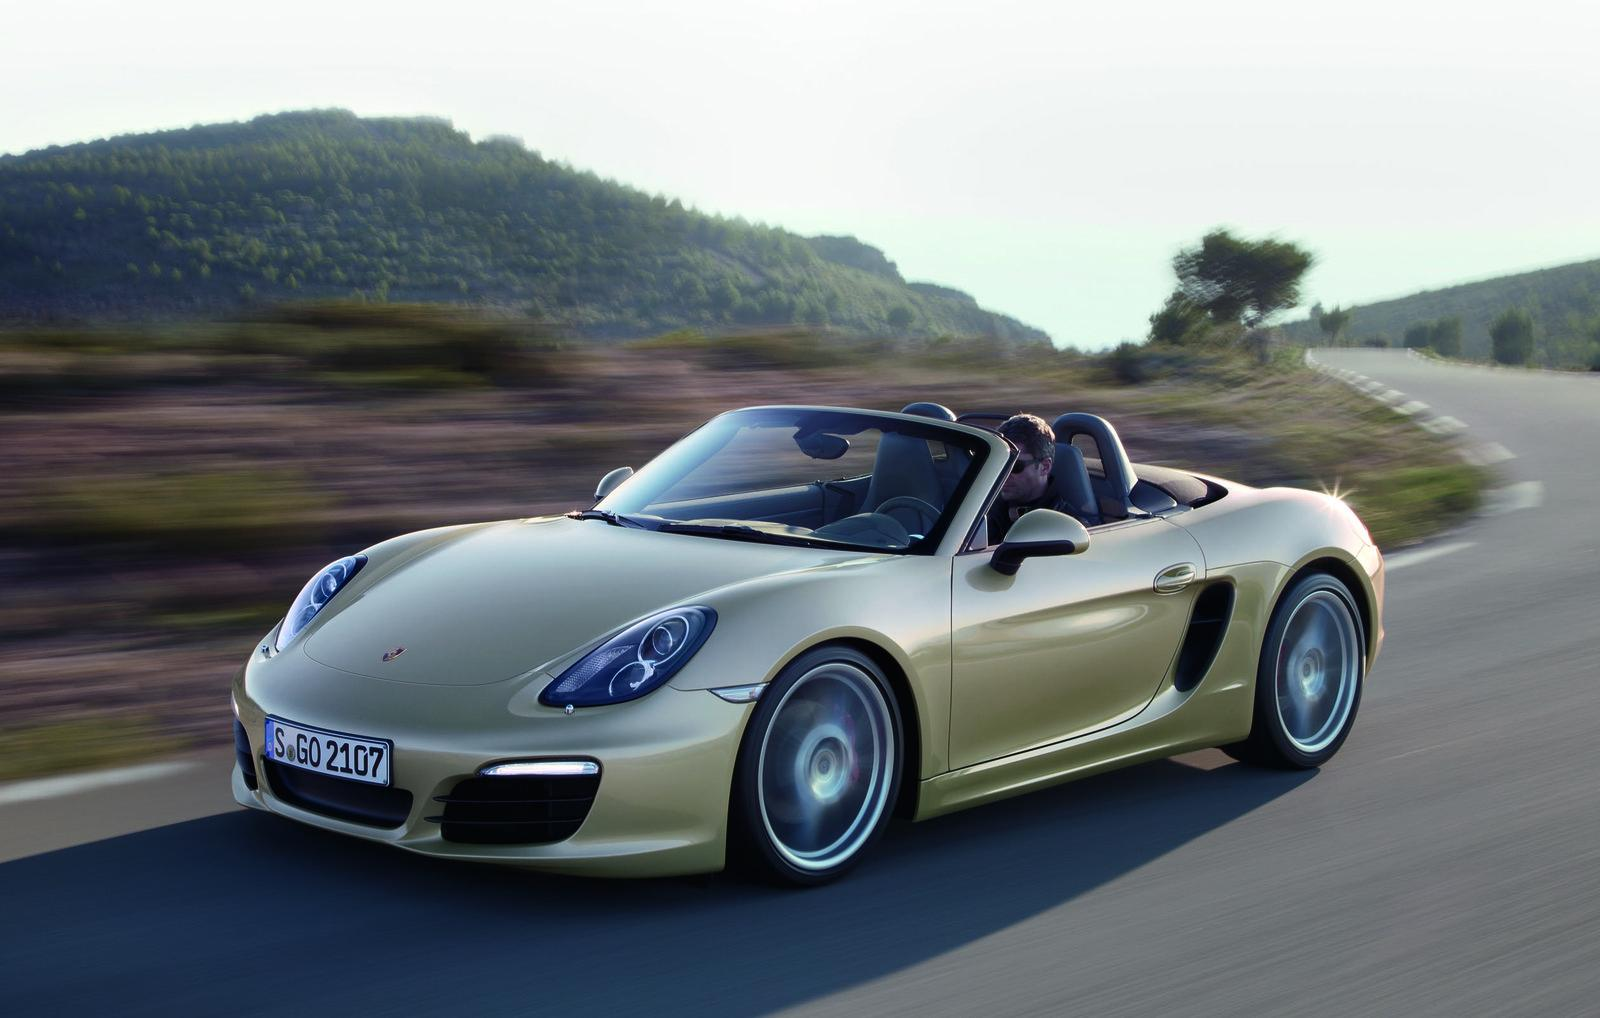 Porsche Boxster S 2013 photo - 11